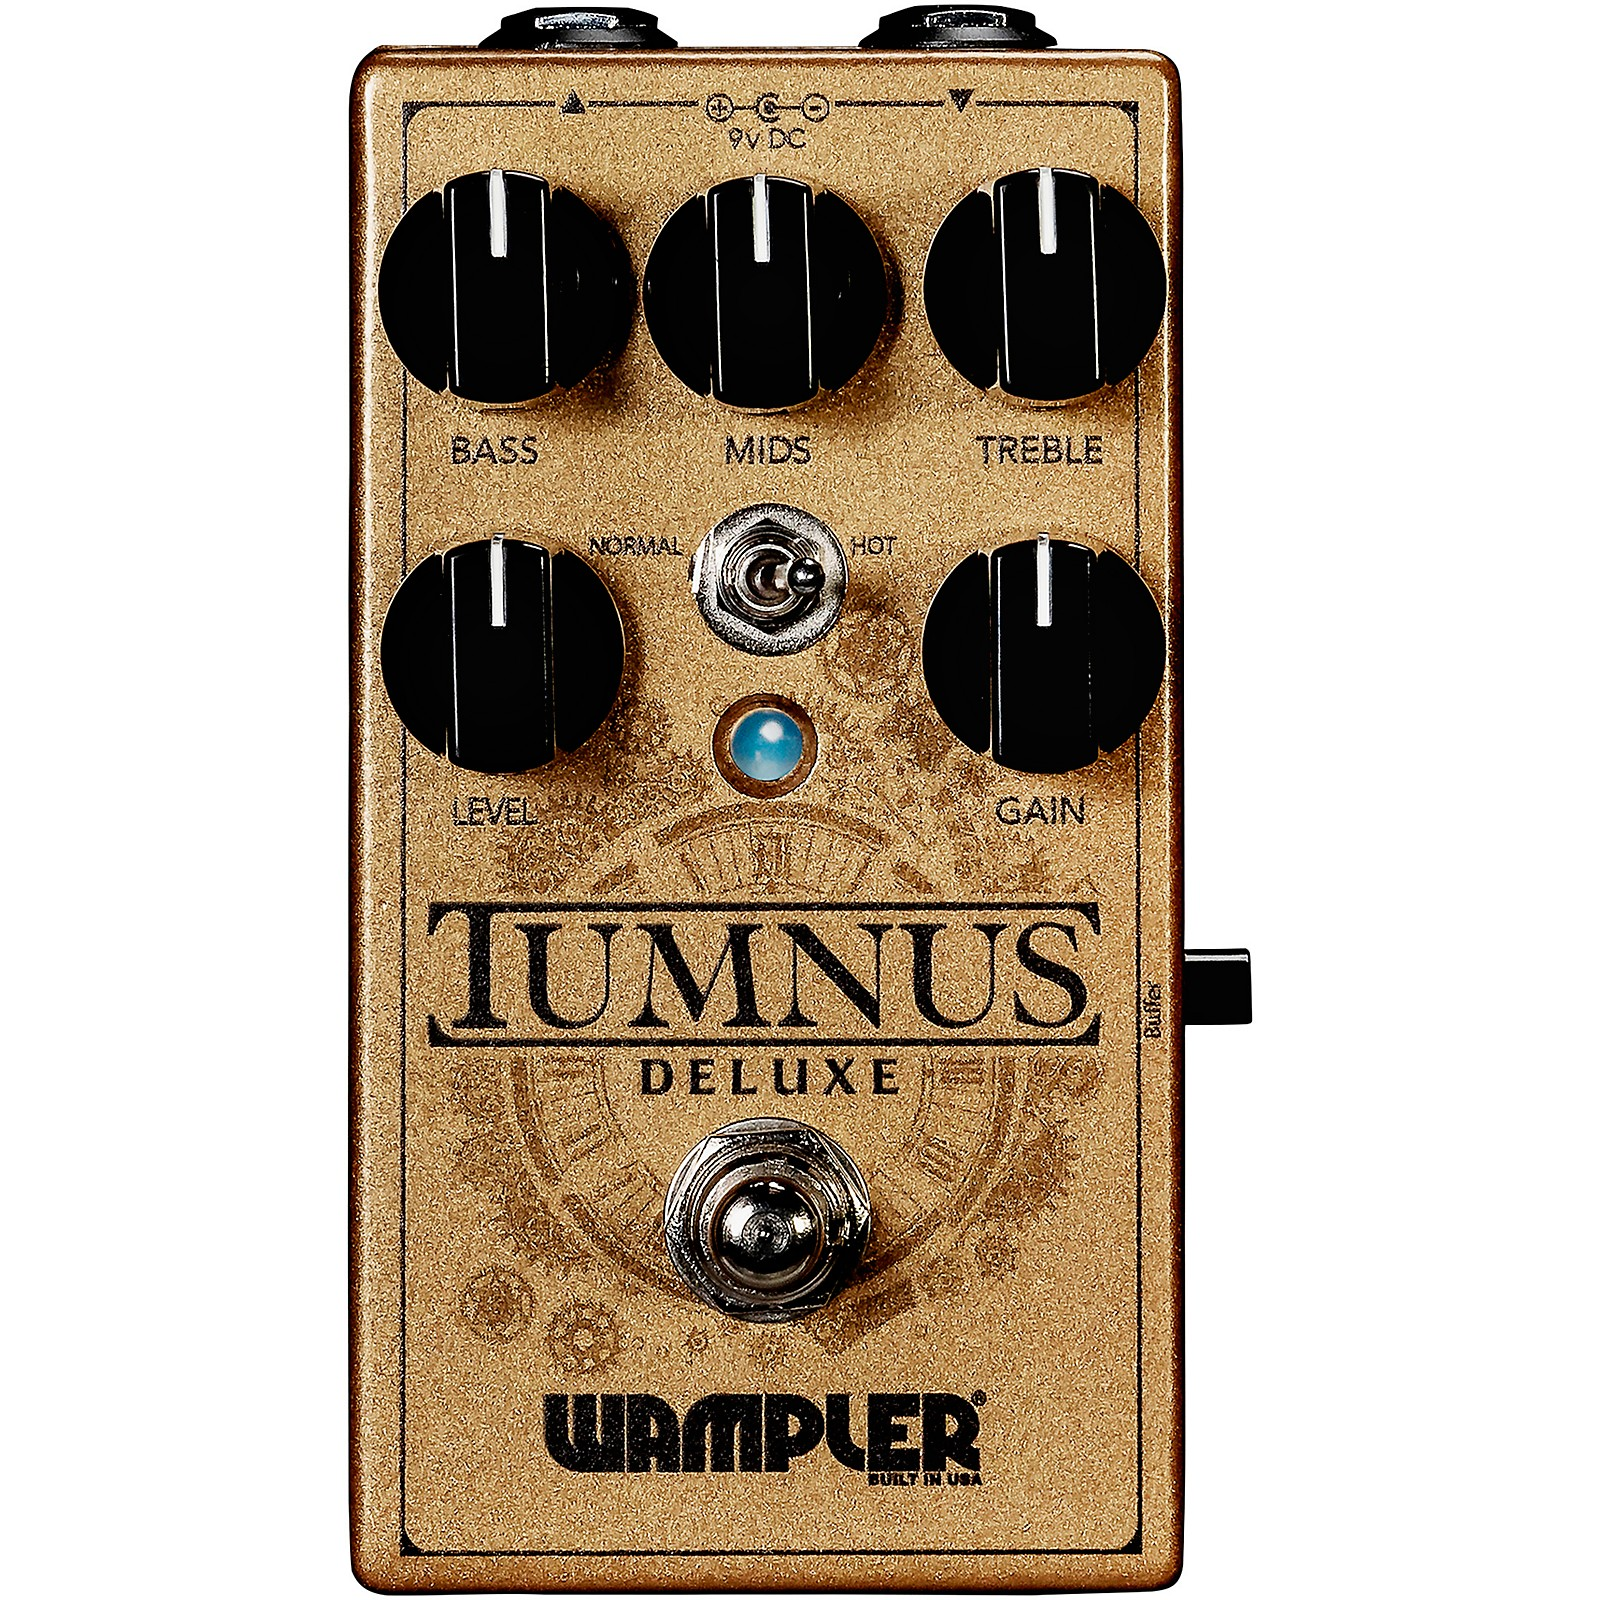 Wampler Tumnus Deluxe Overdrive Effects Pedal